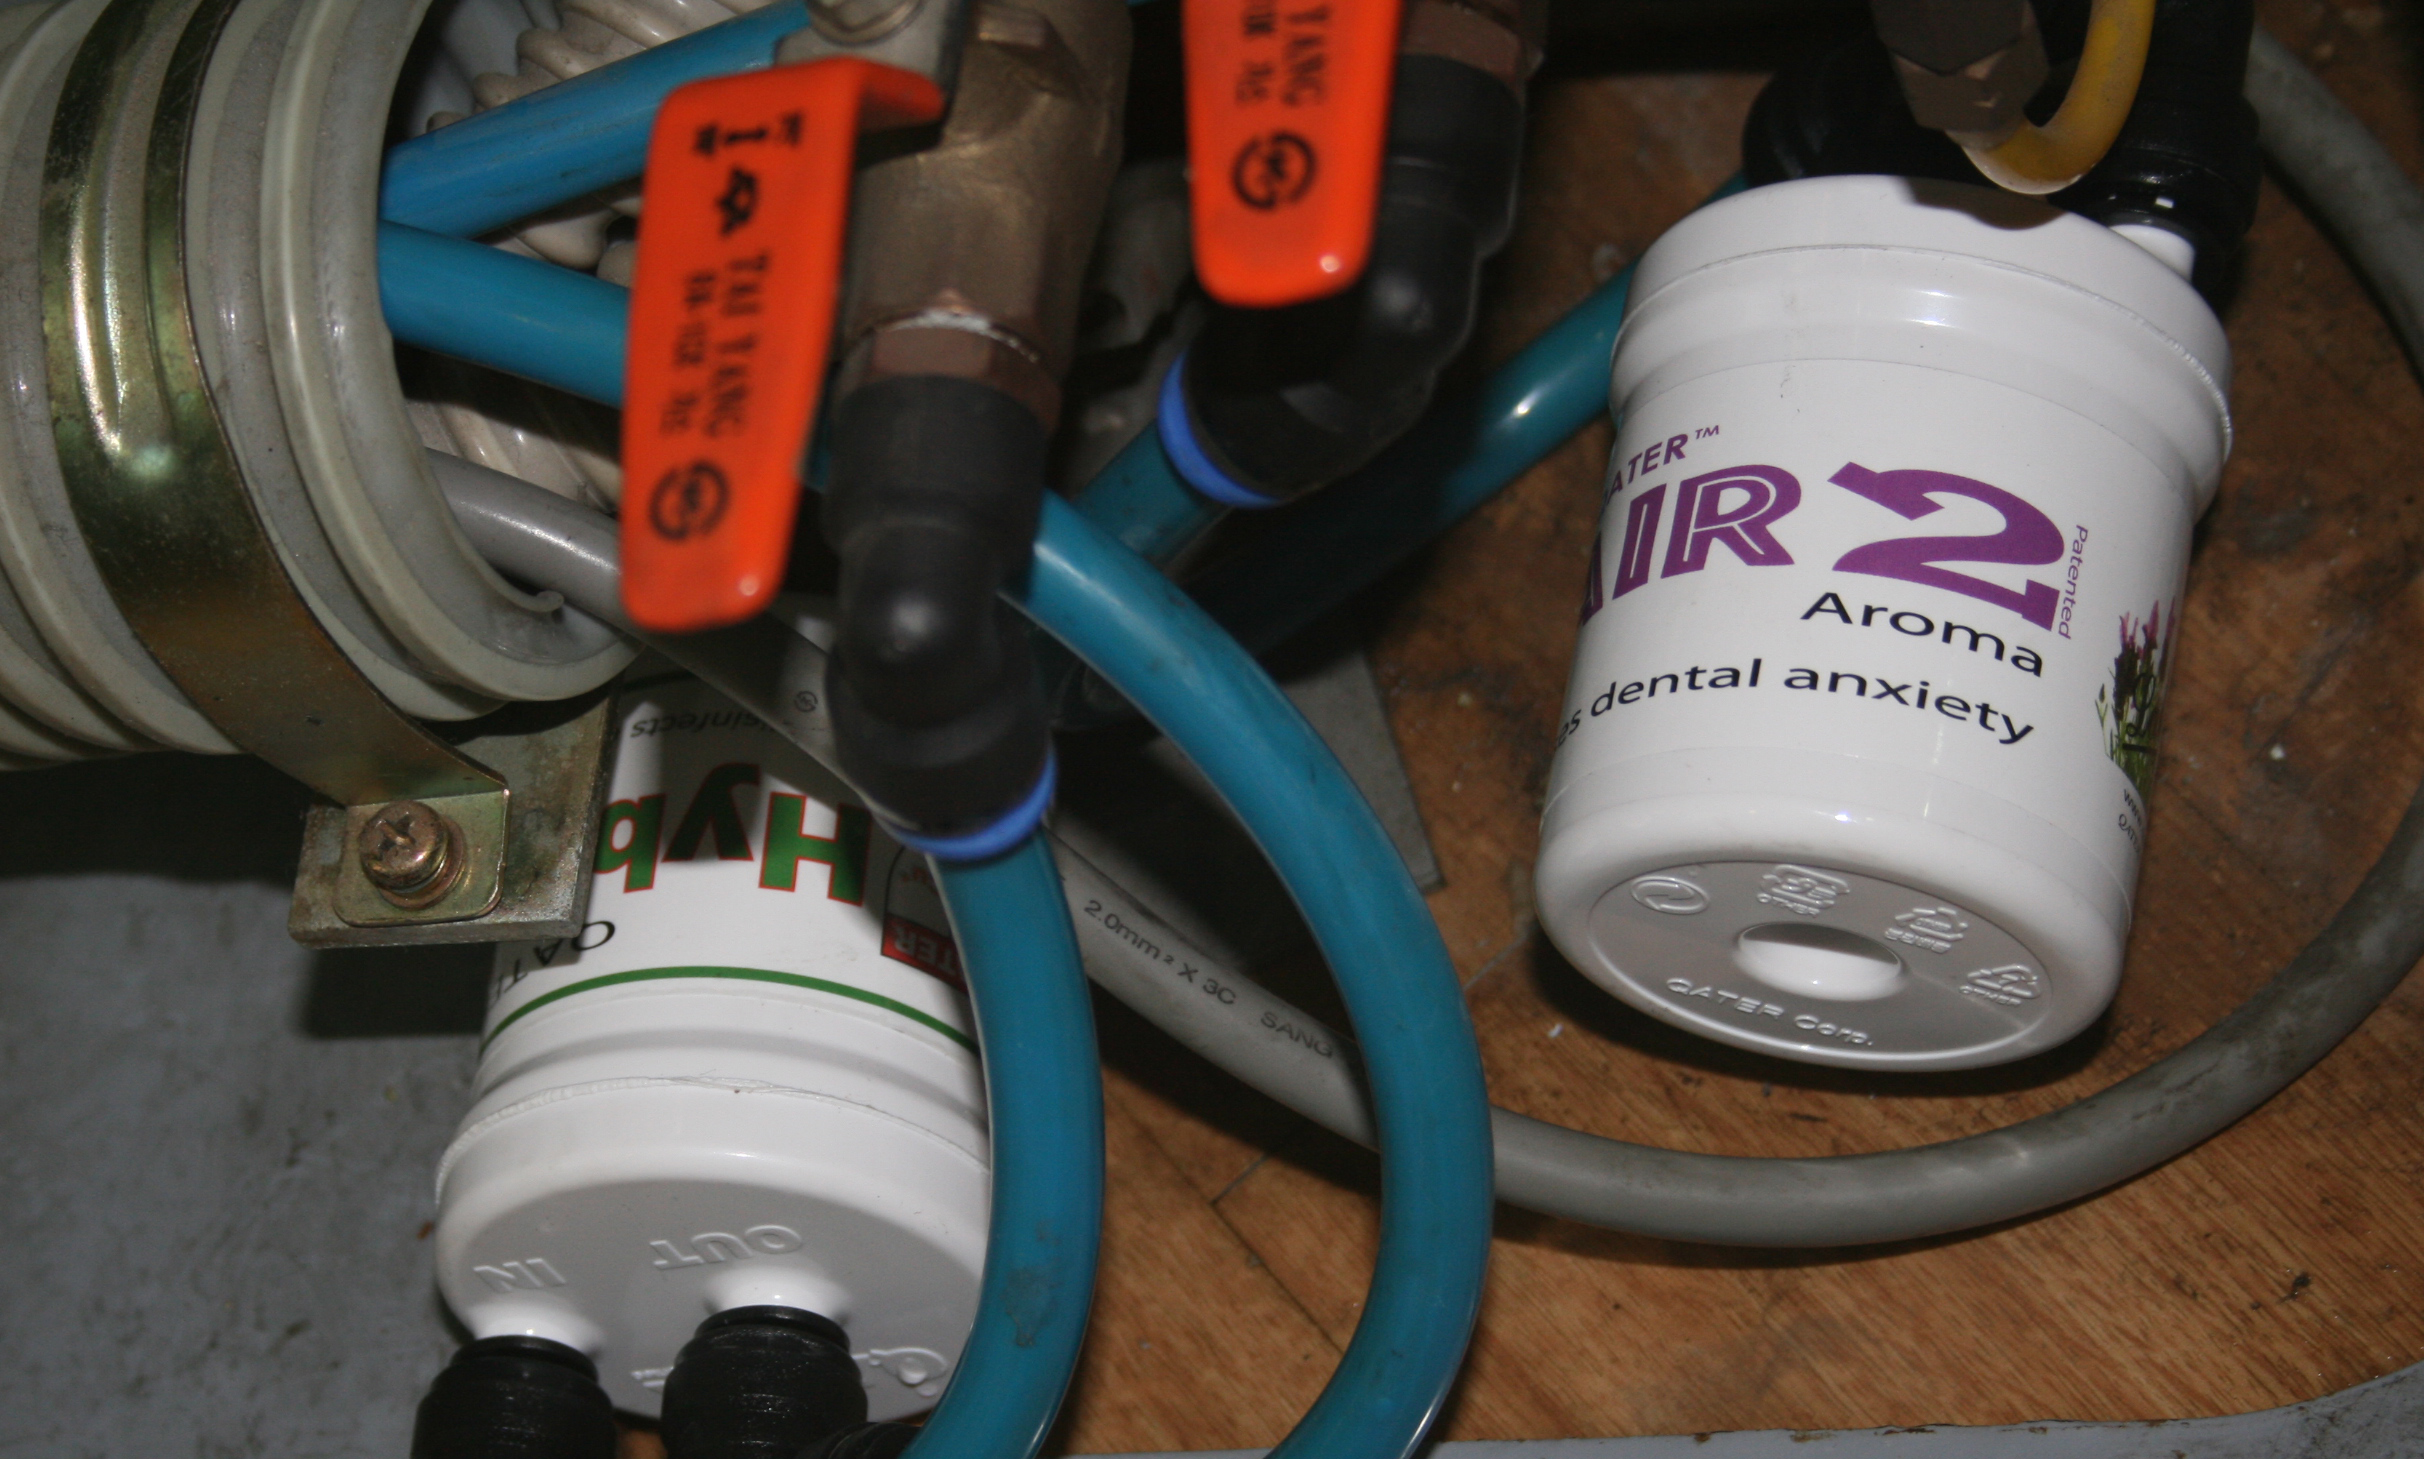 QATER Air 2 Aroma - Lavender installed in junction box